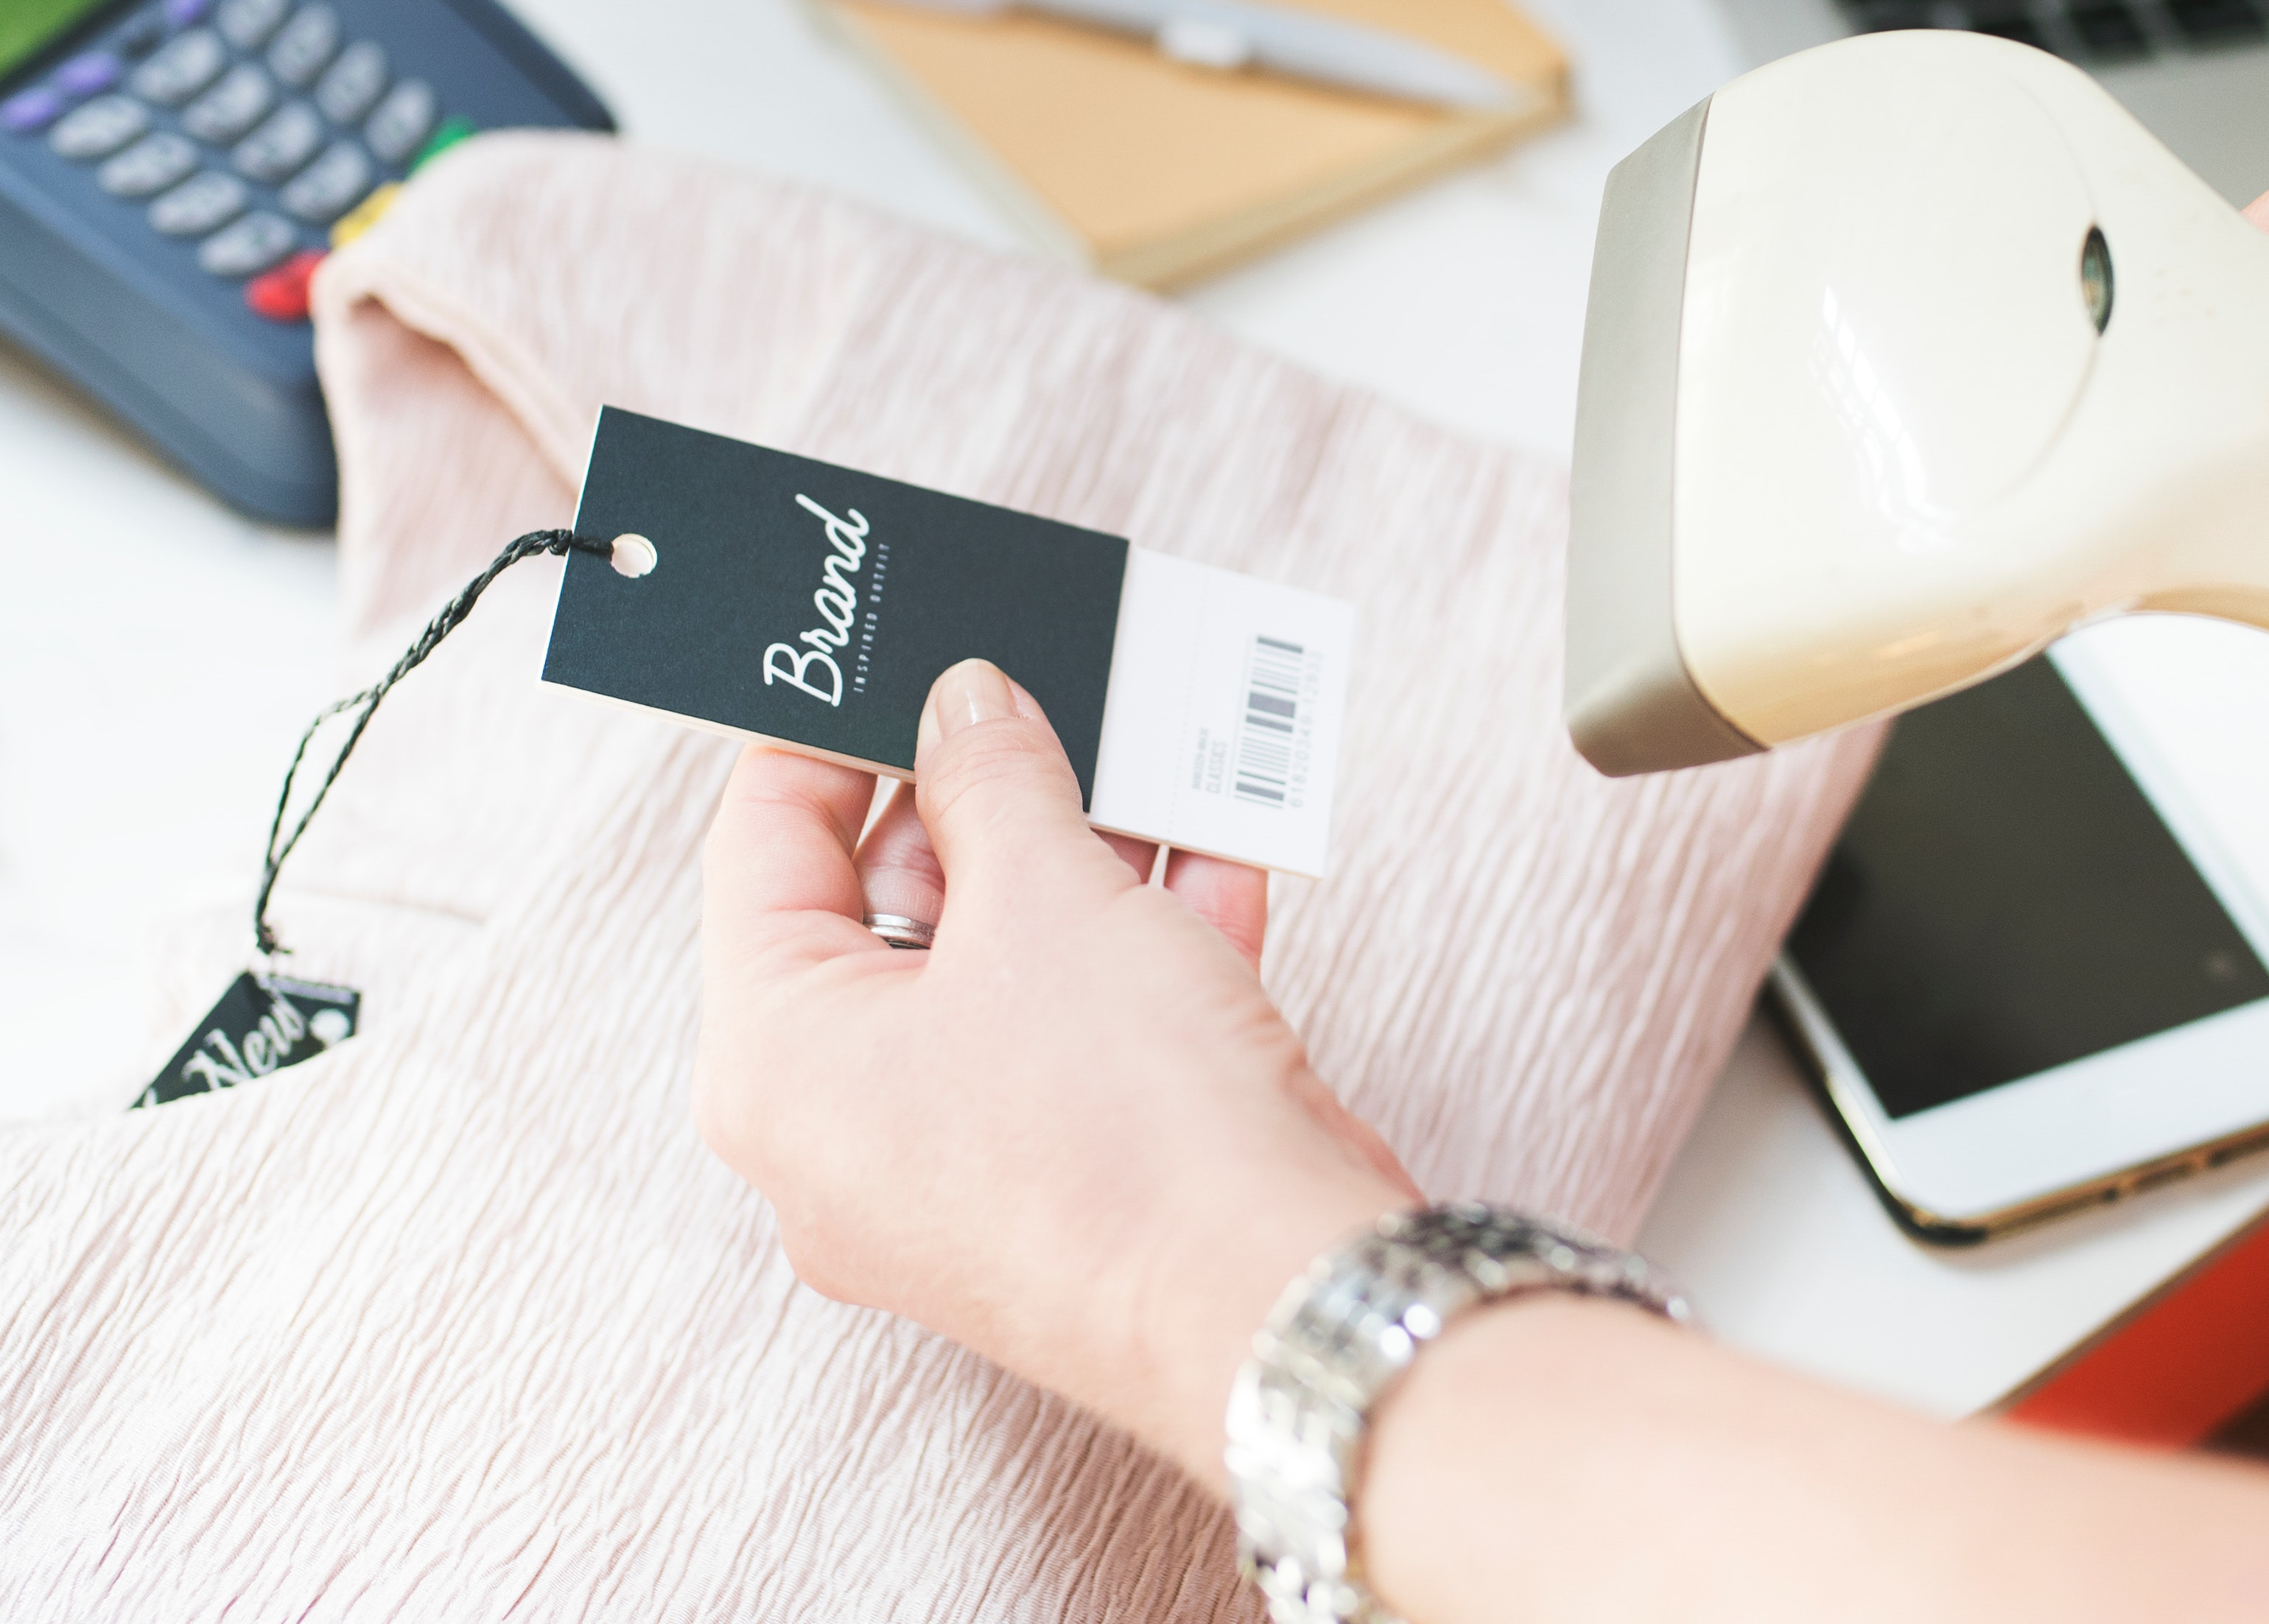 5 Things to Consider While Choosing Retail IT Solutions